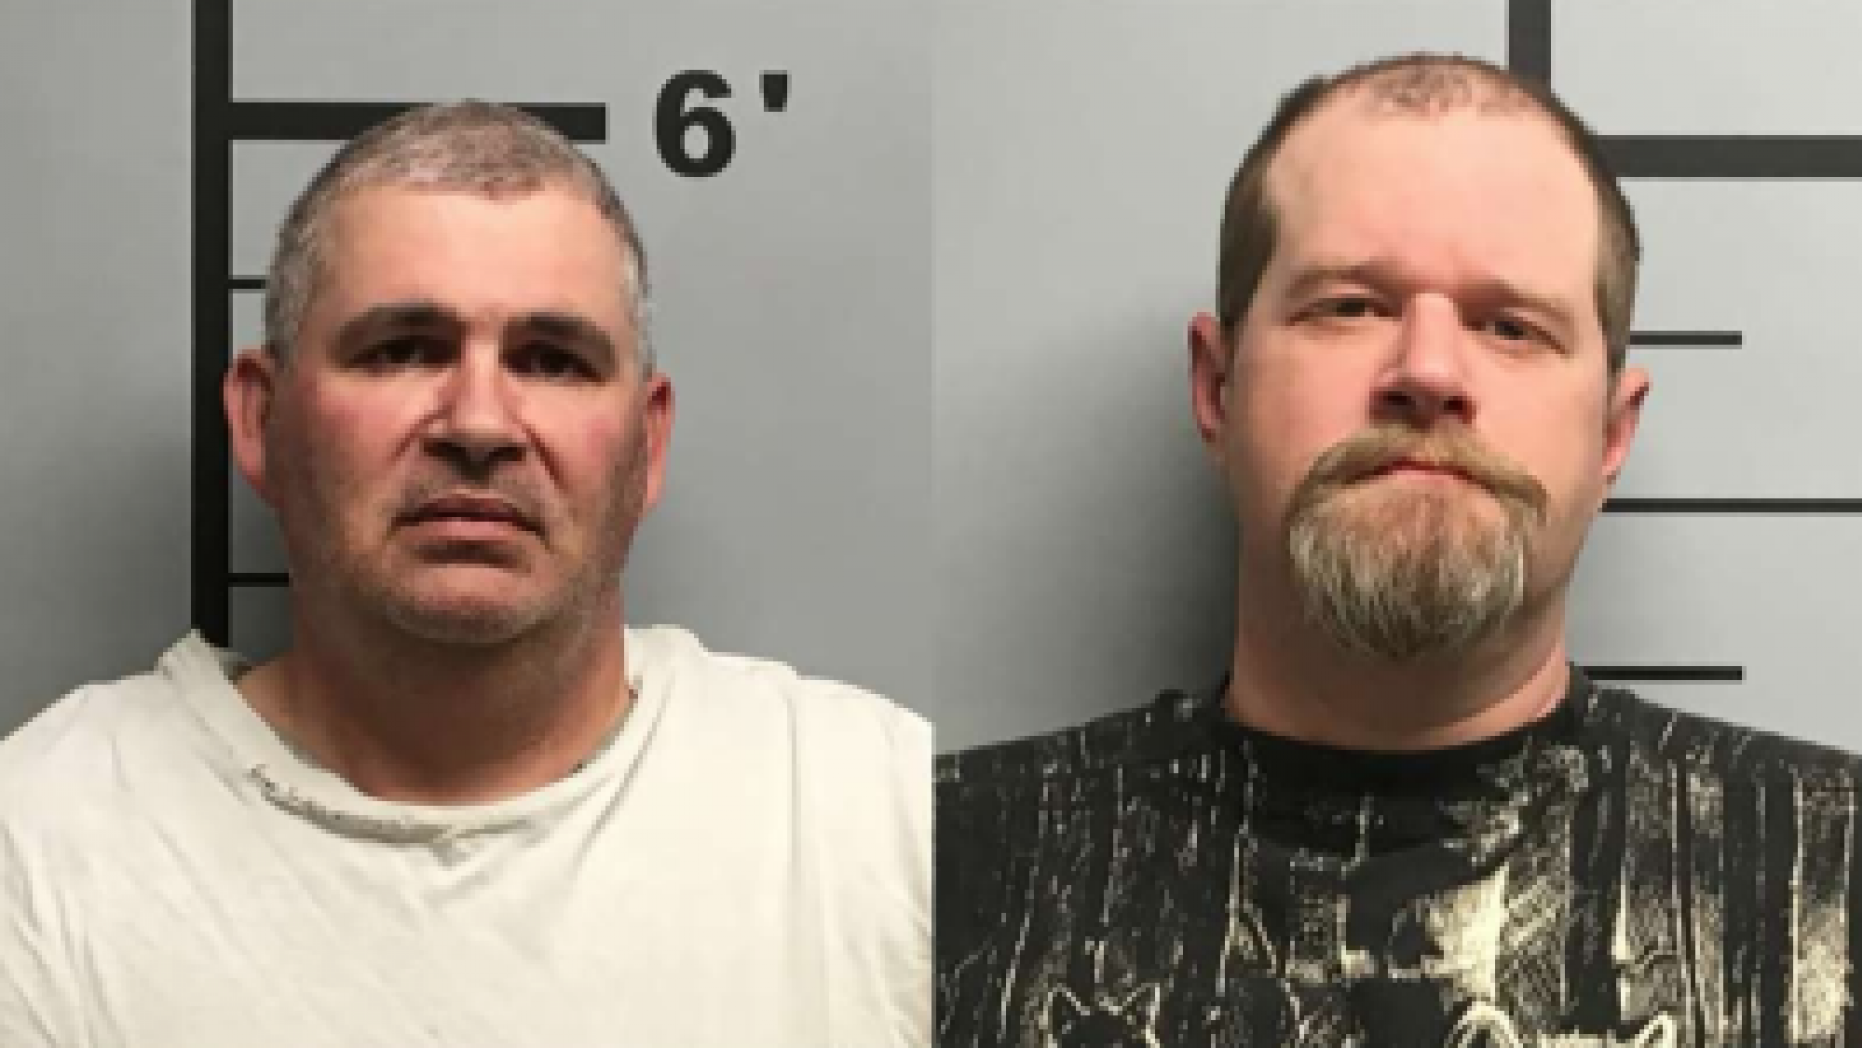 Charles Eugene Ferris, 50, and Christopher Hicks, 36,